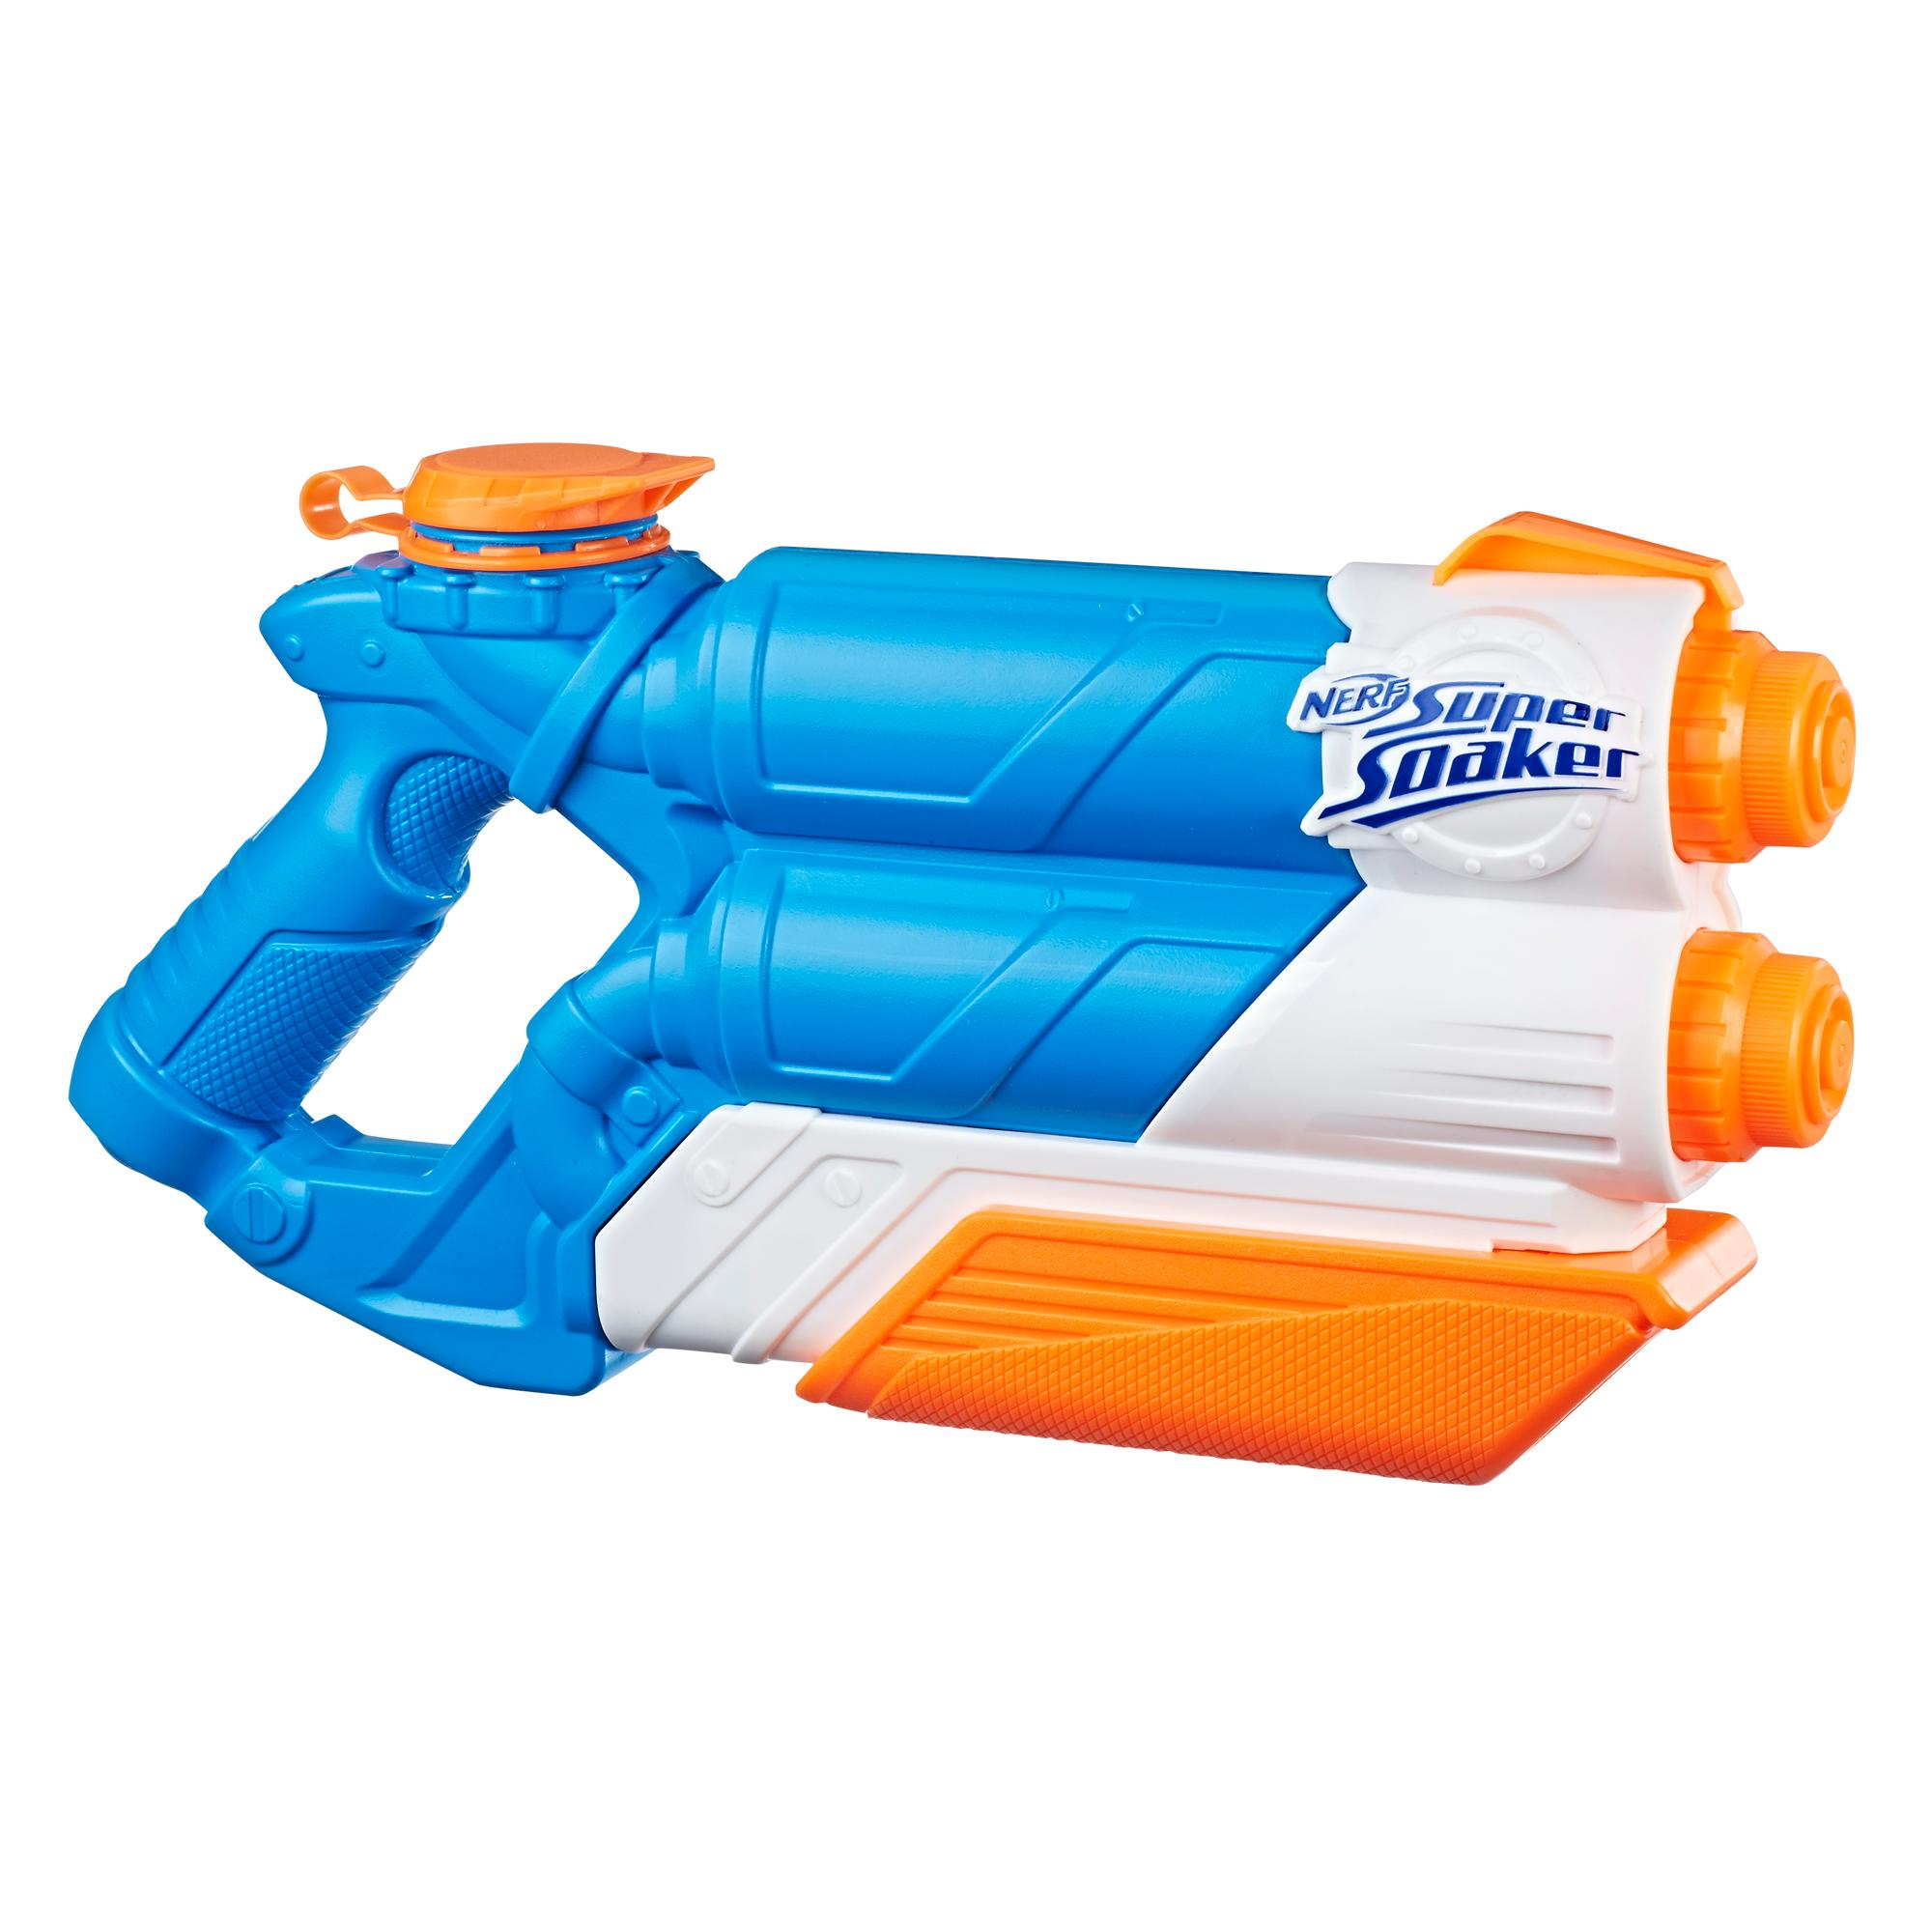 Nerf Super Soaker - Twin Tide